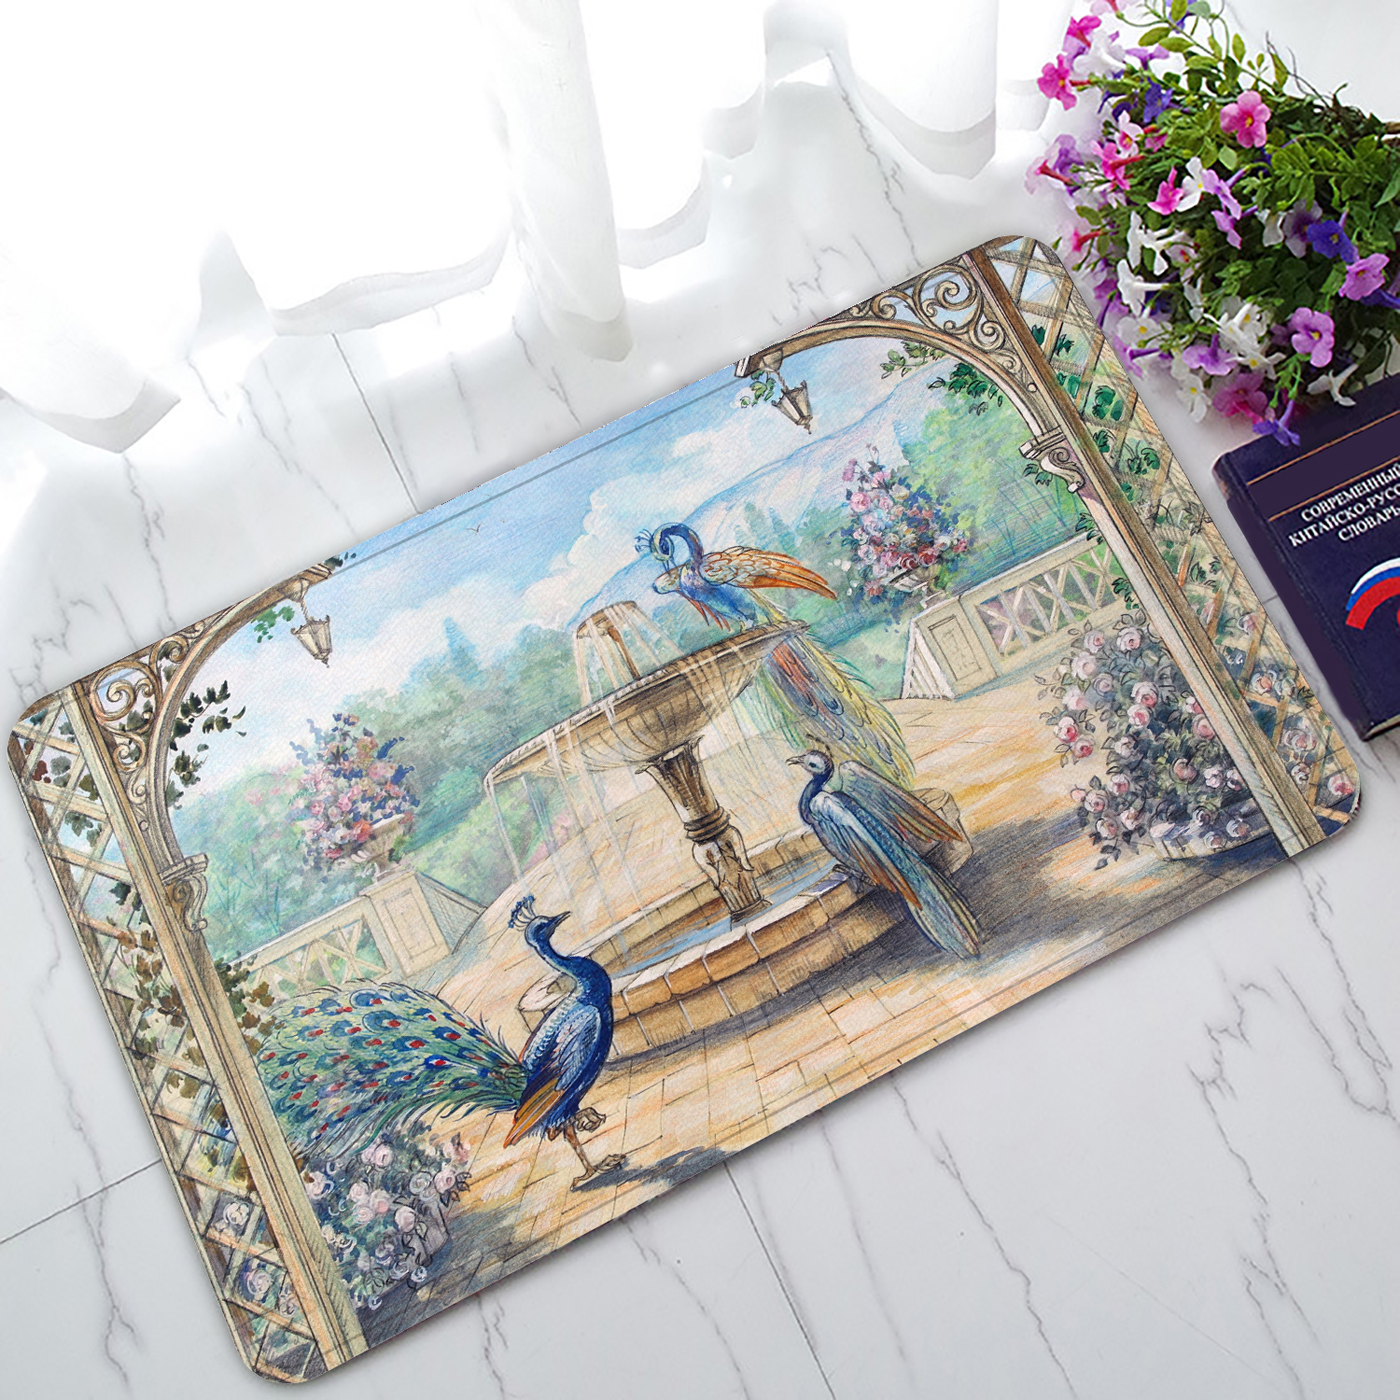 YKCG Floral Watercolor Peacocks in A Spring European Garden with Fountains & Flowers Doormat Indoor/Outdoor/Bathroom Doormat 30x18 inches